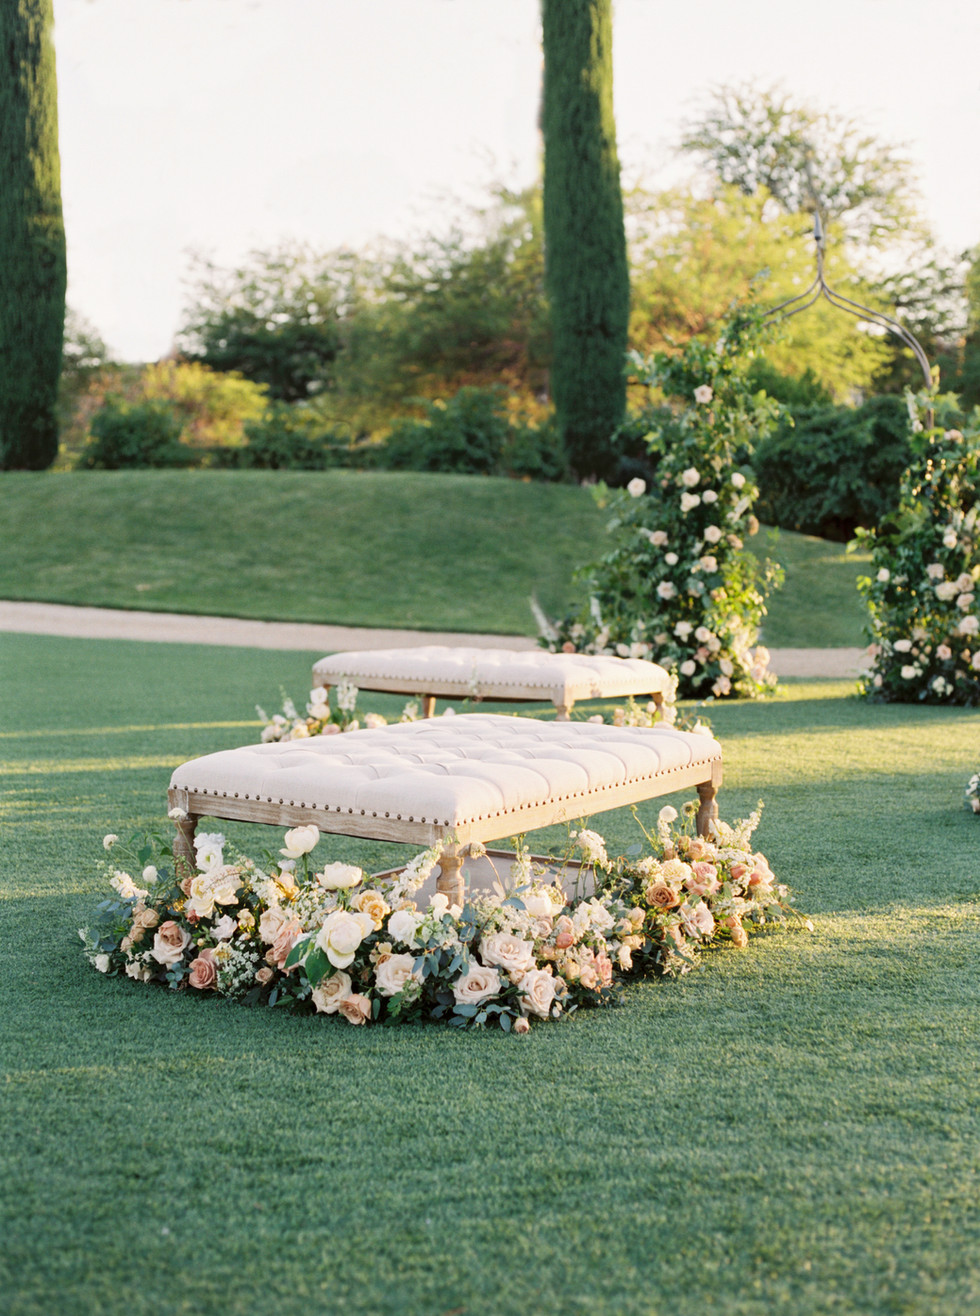 Lush florals for ceremony seating. Photo: Lianna Marie